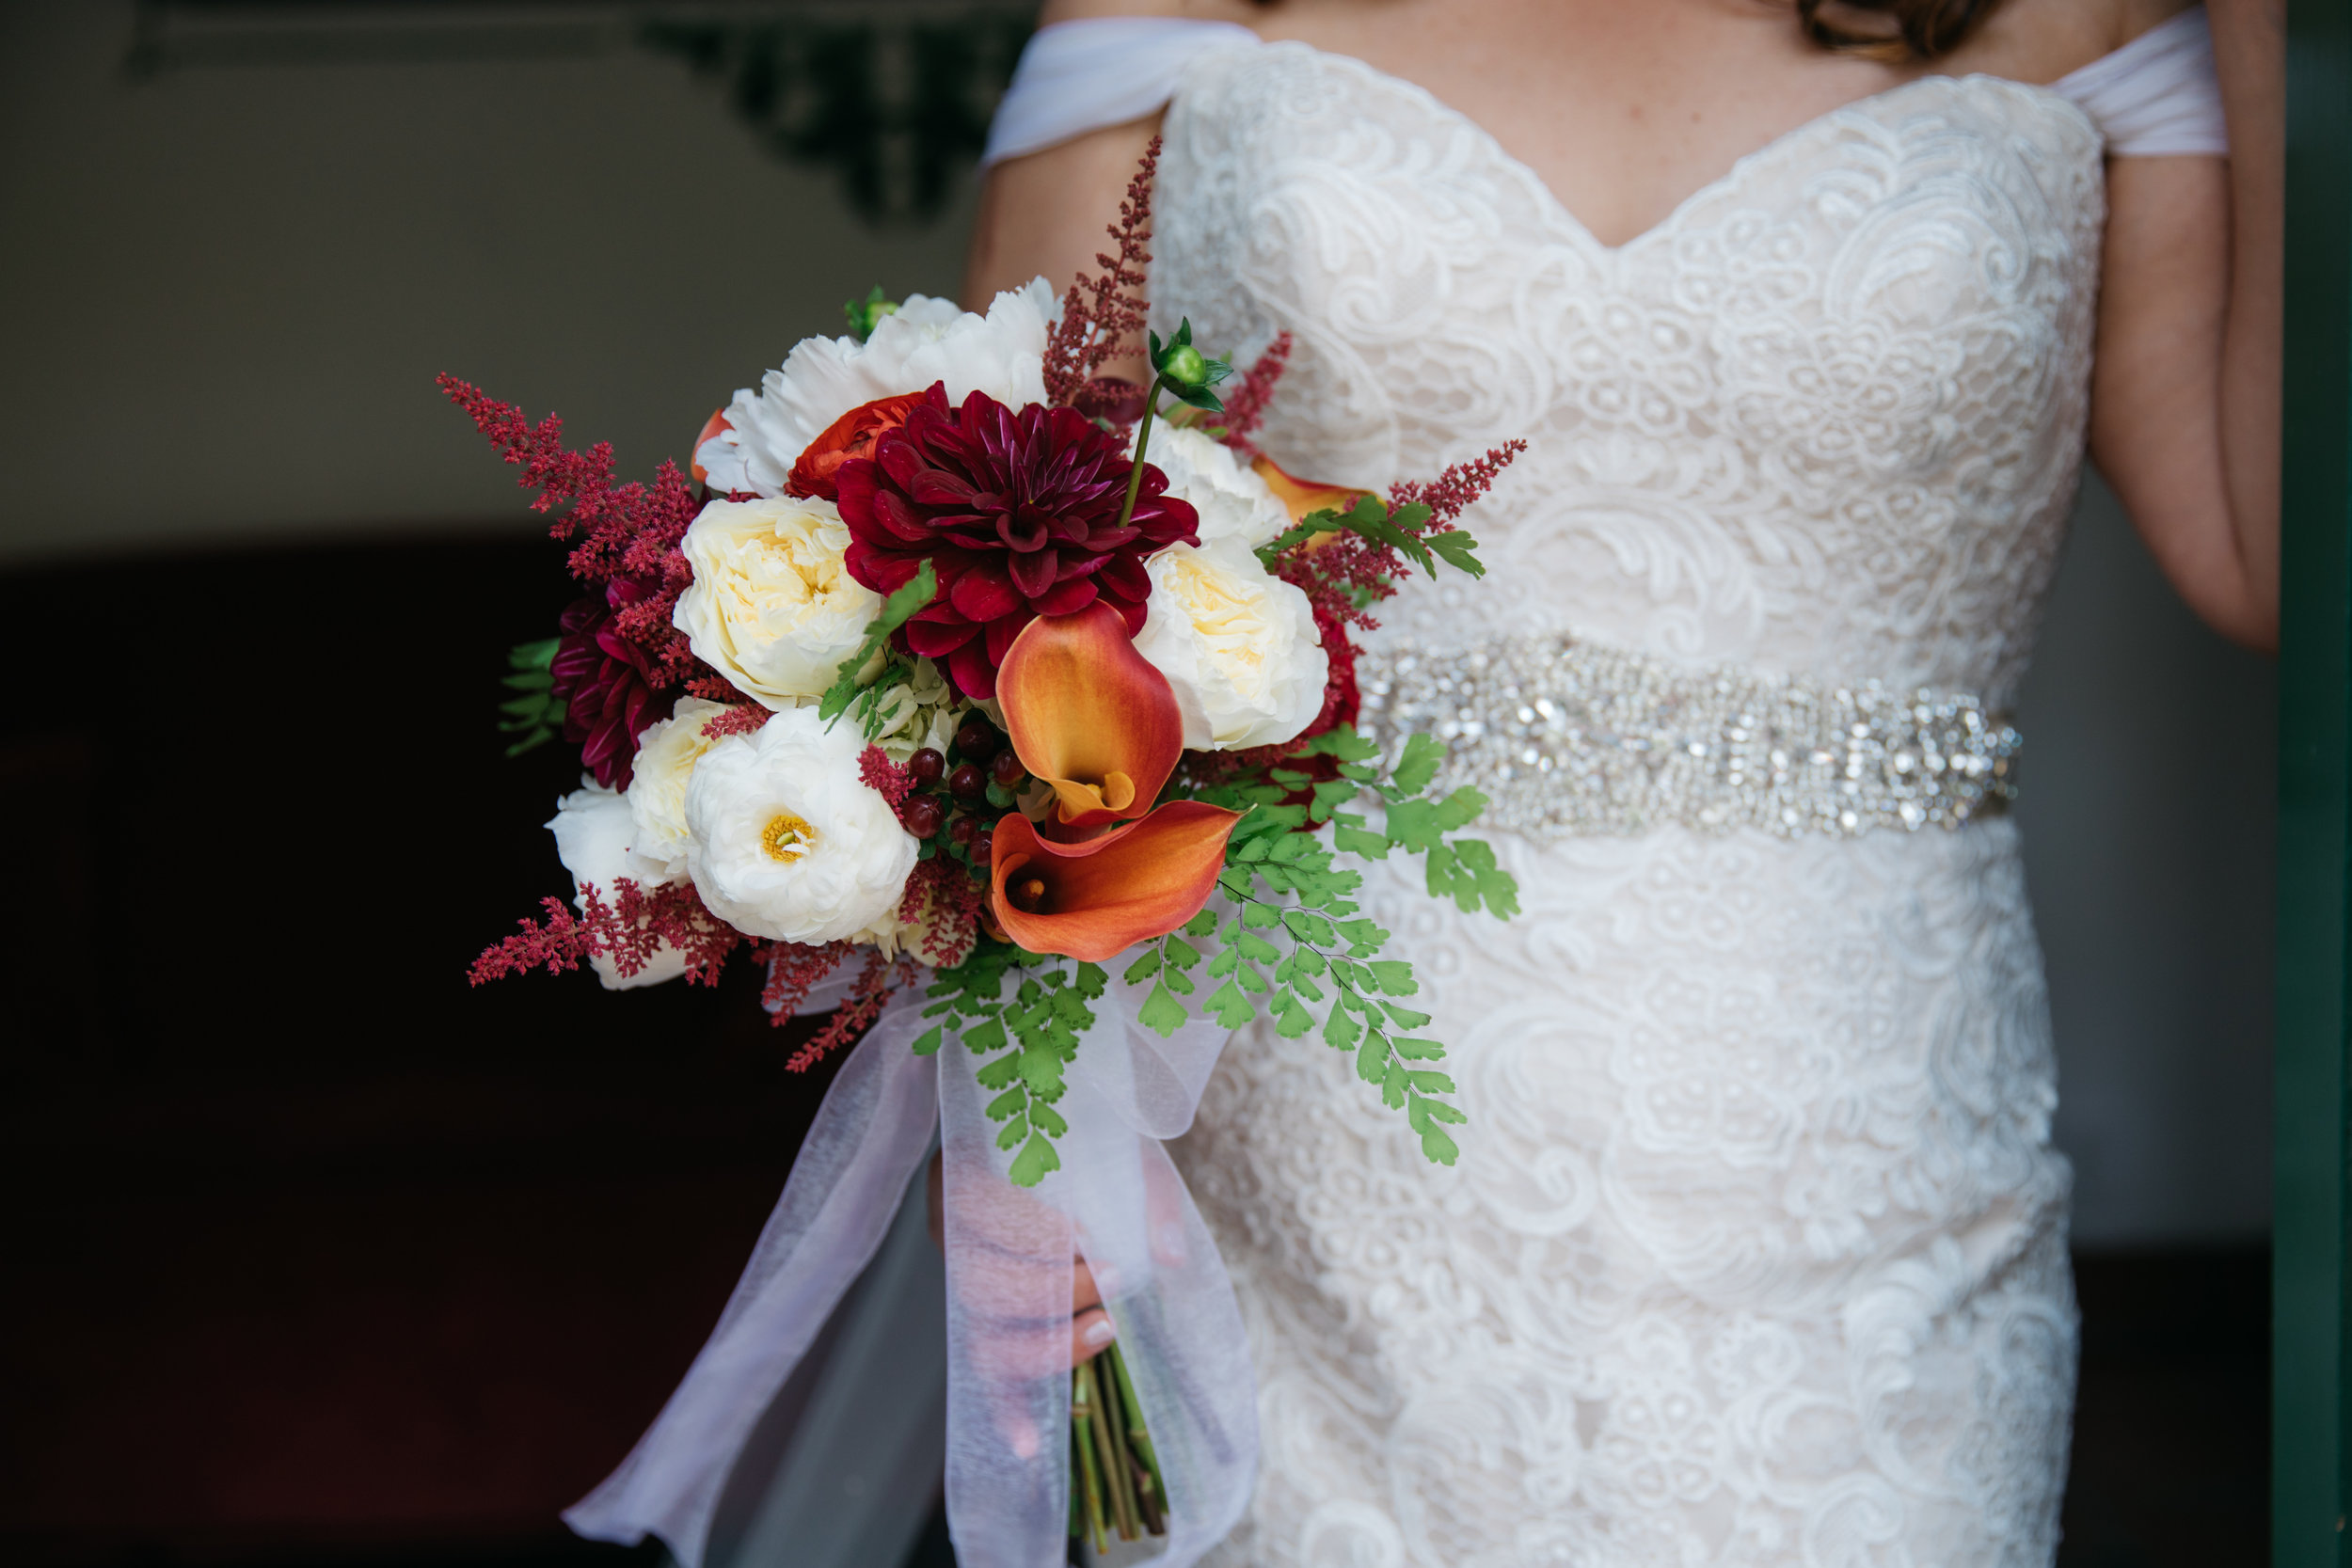 rancho-las-lomas-wedding-planner-best-wedding-planner-in-southern-california25.jpg